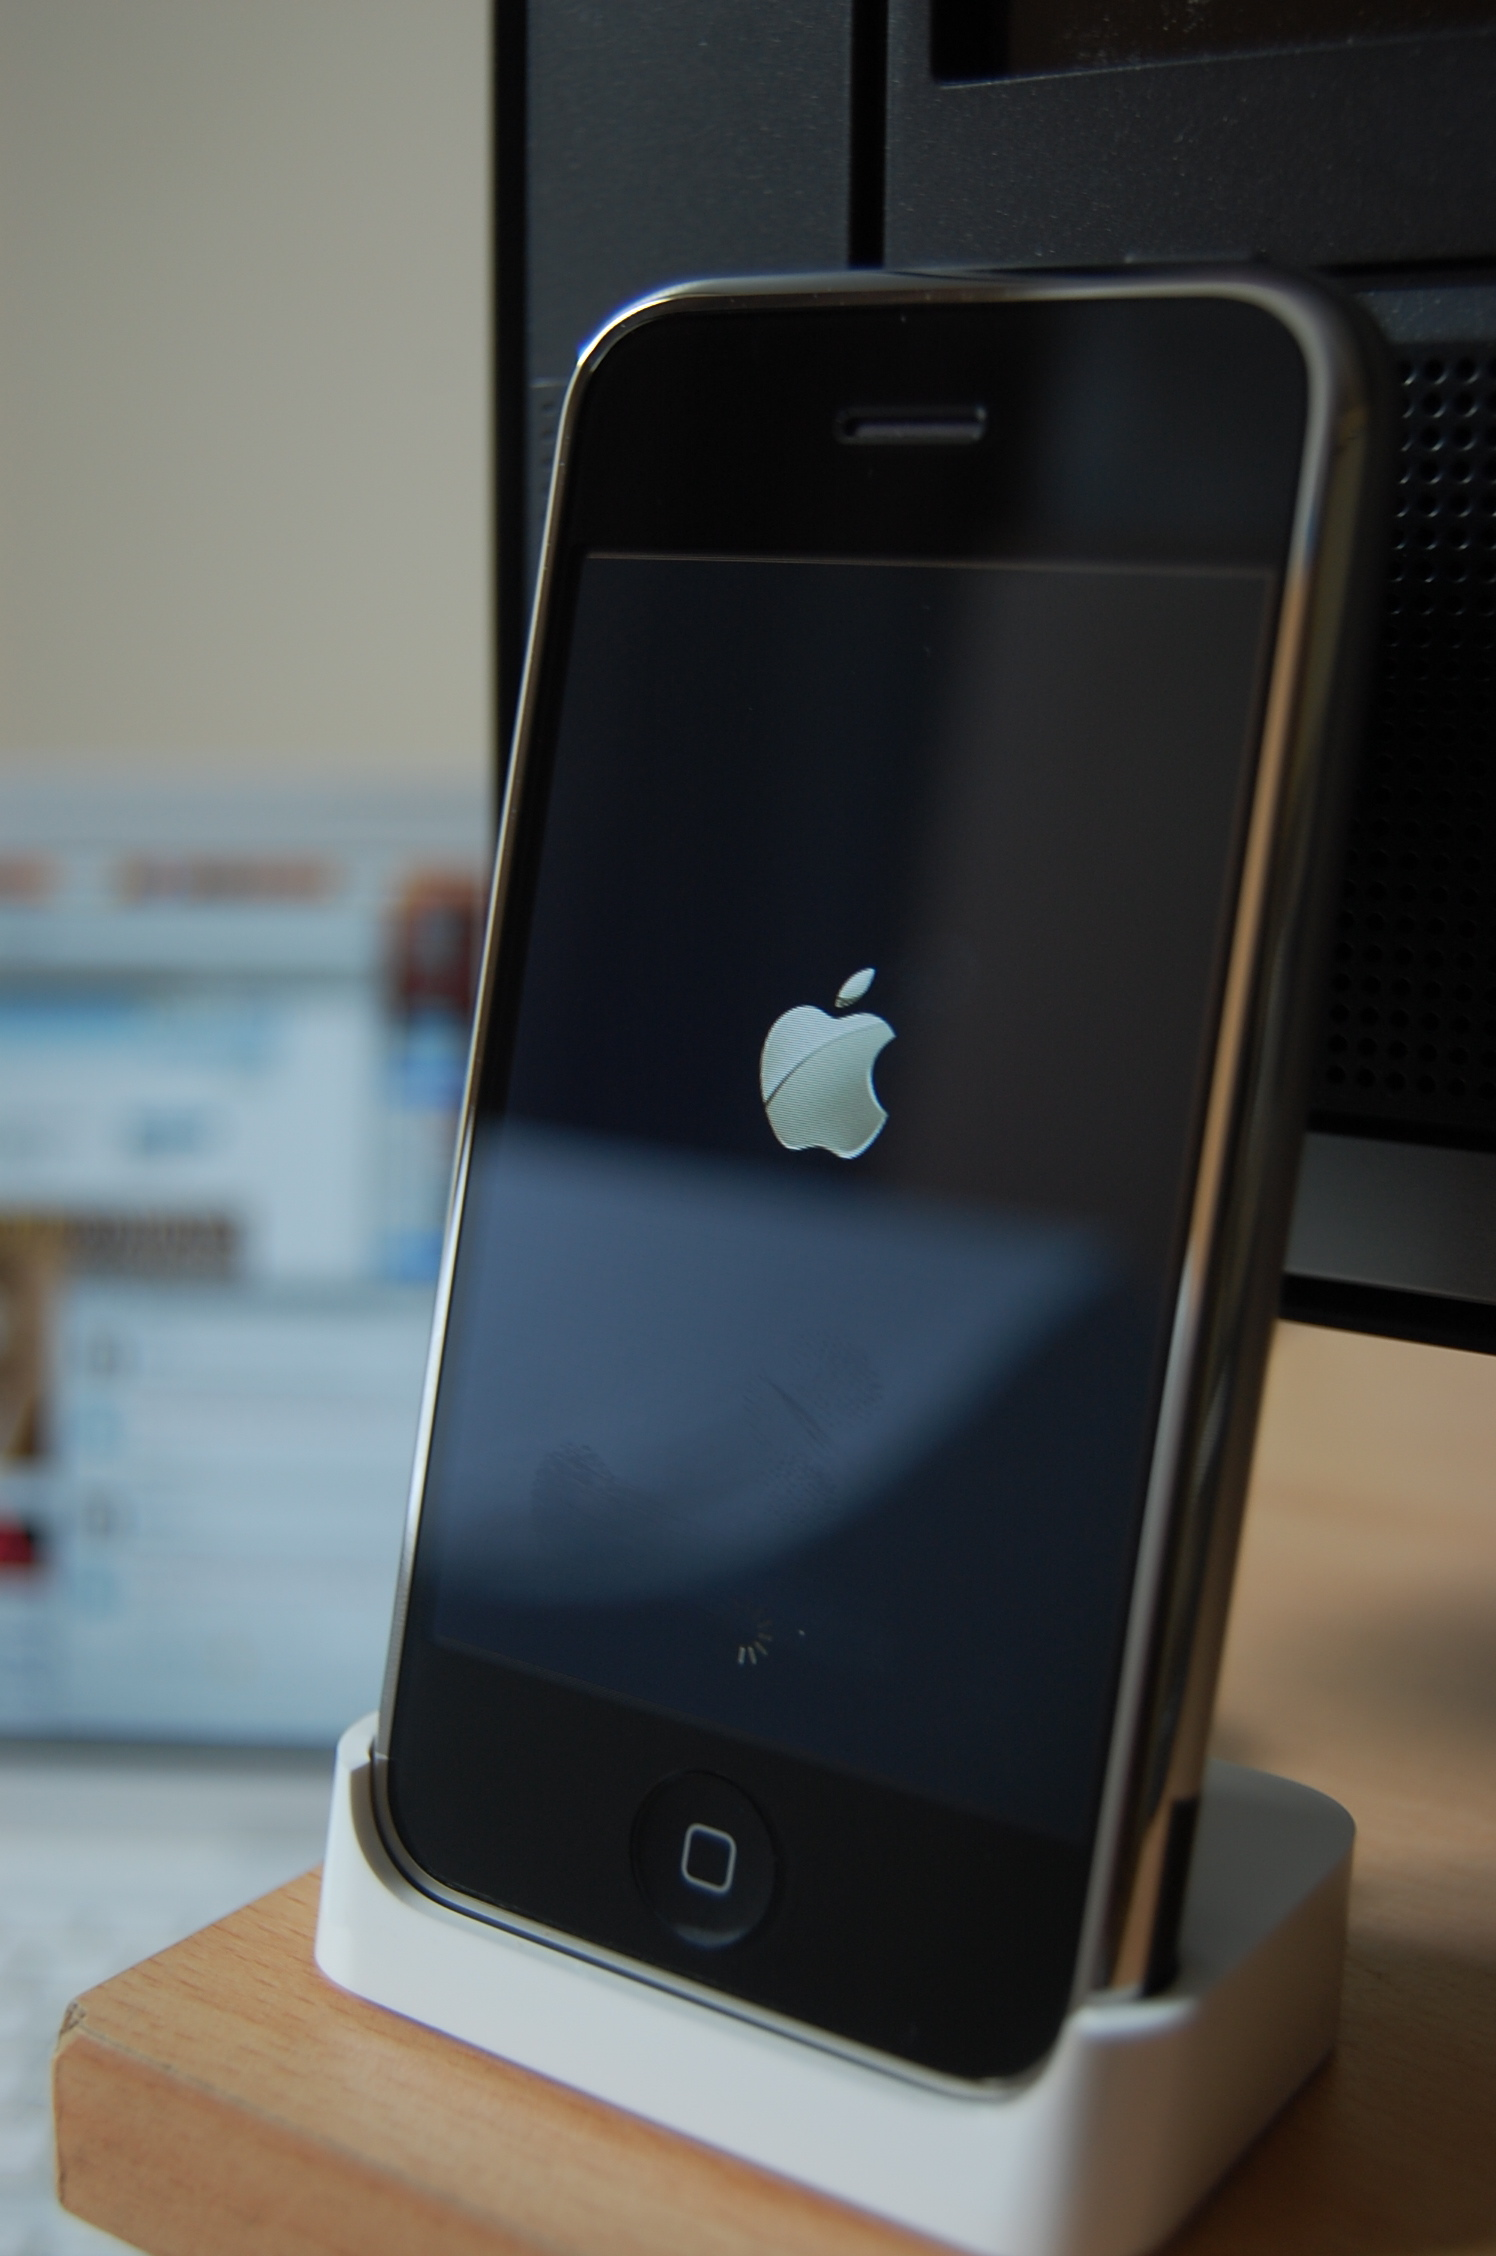 Original iPhone docked, via Wikipedia